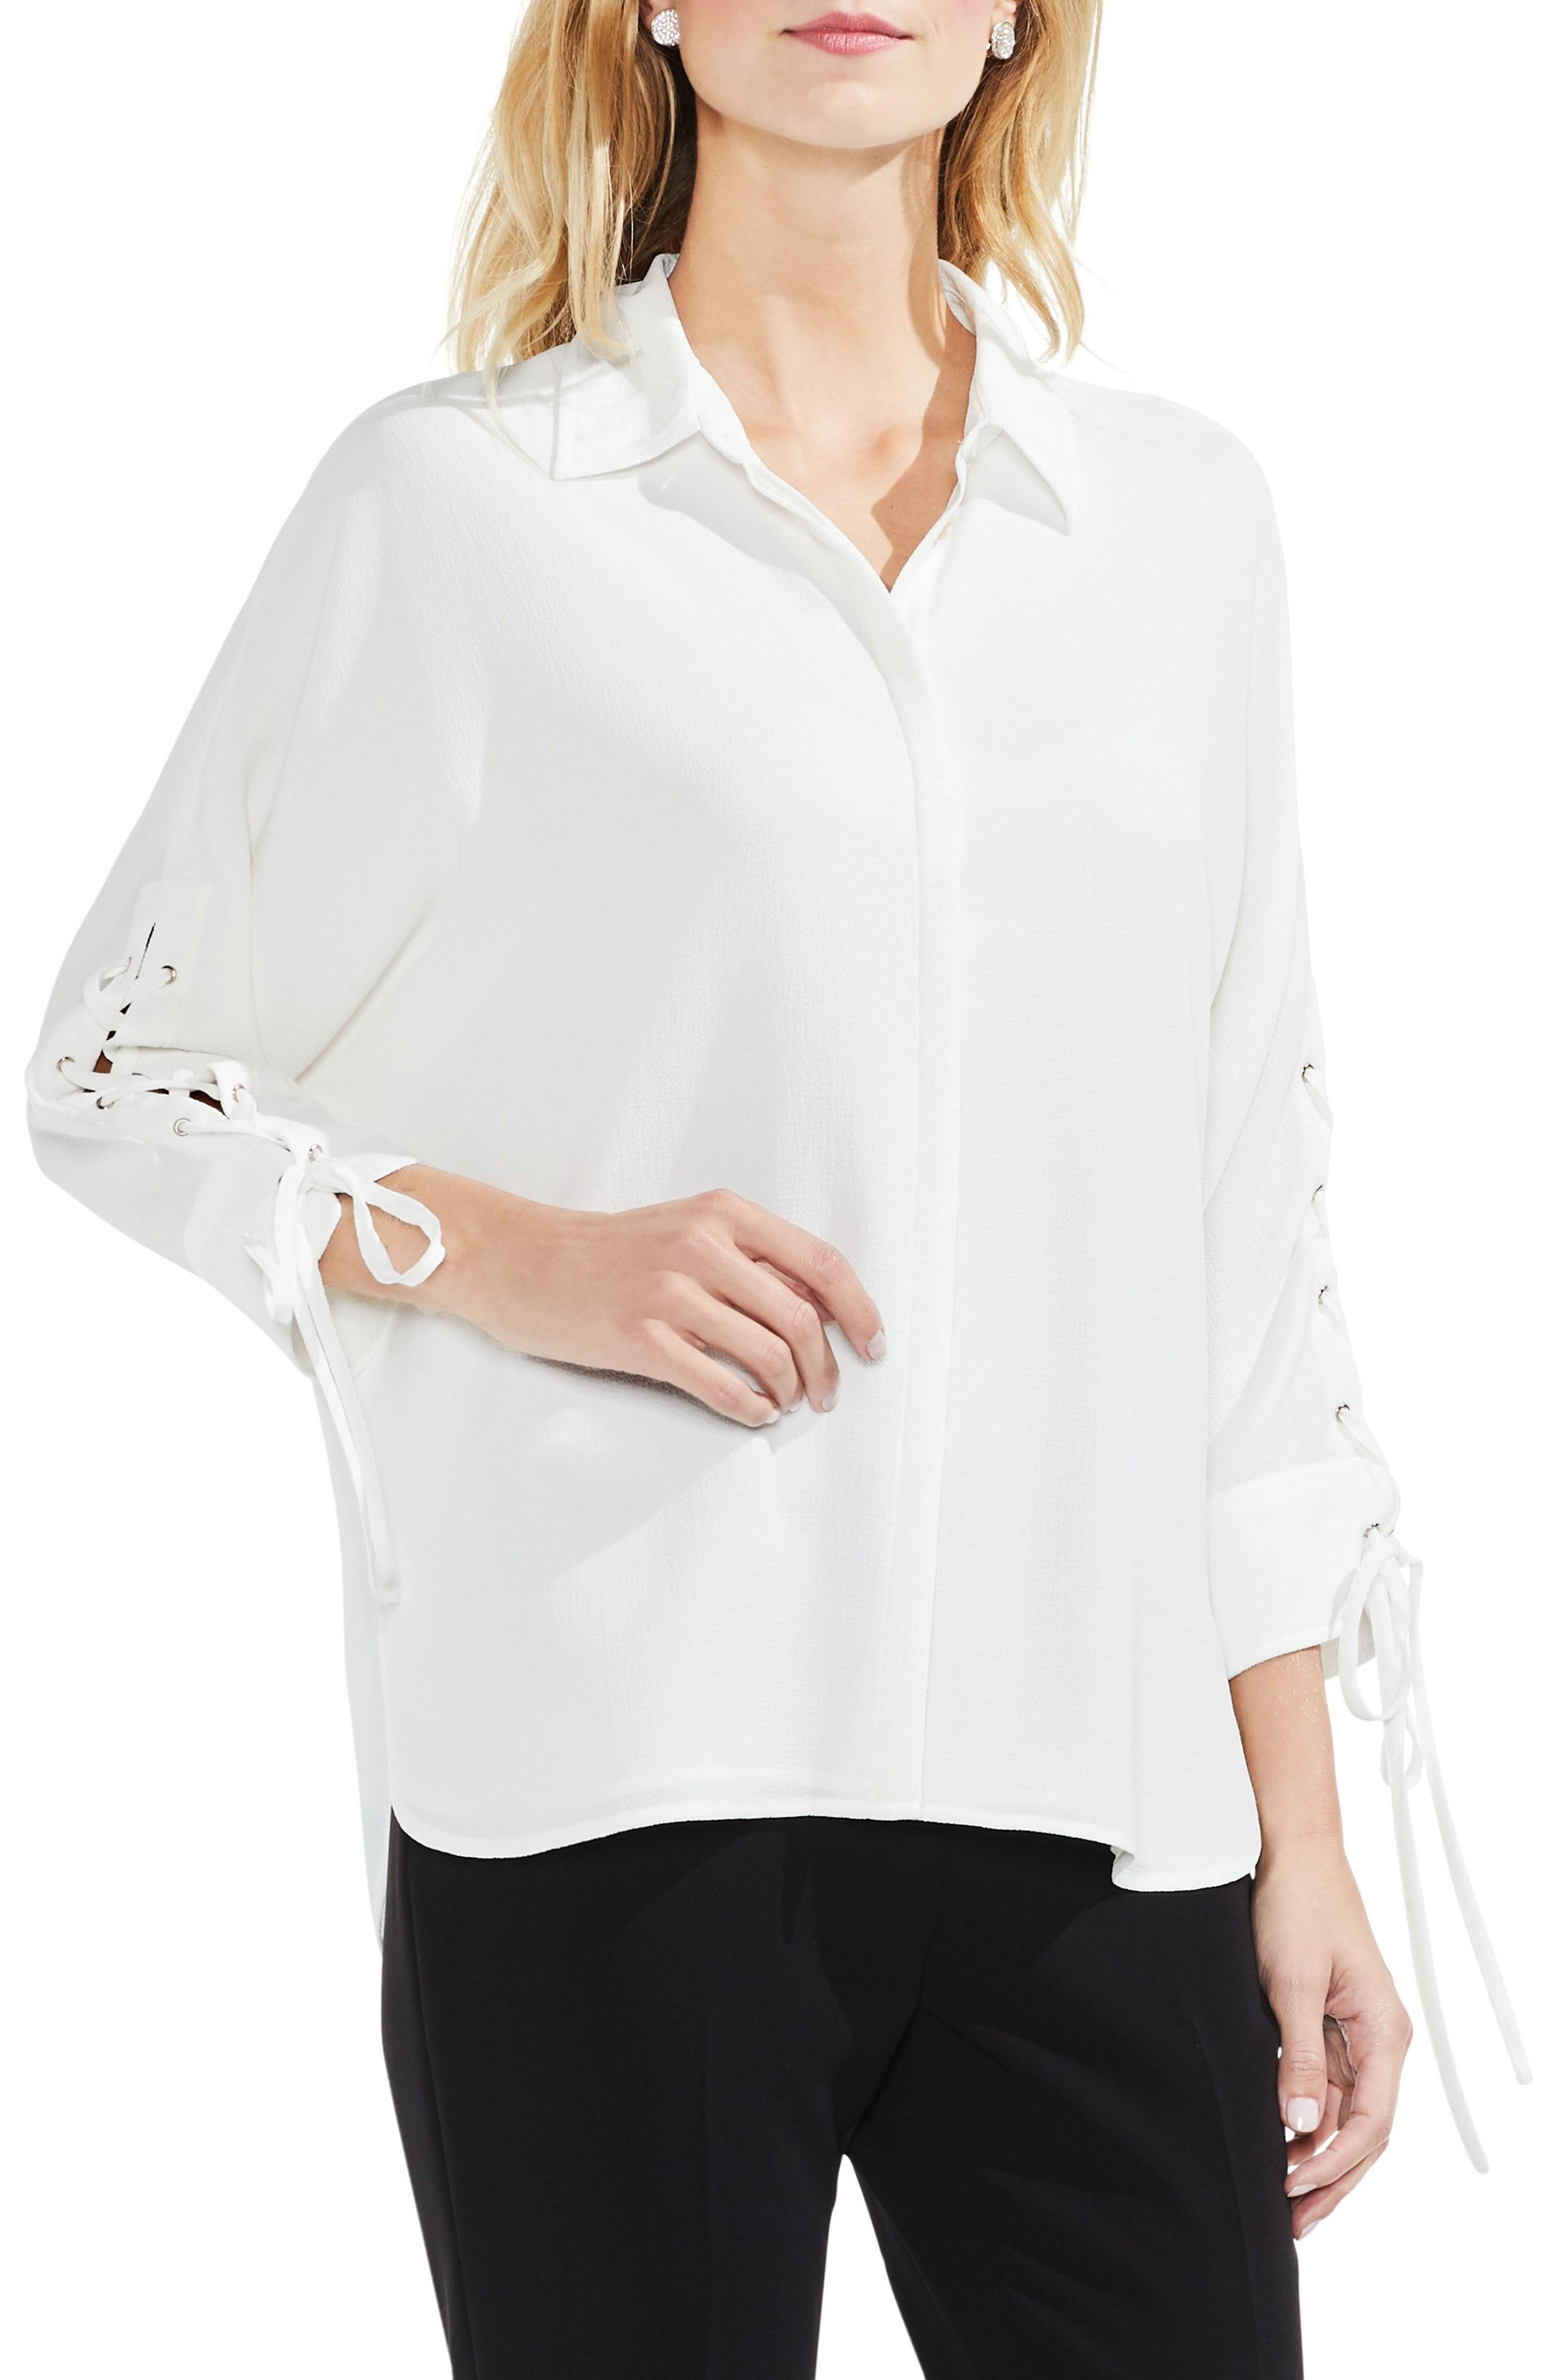 7dc24488e6a76 A breezy blouse cut from lightly textured crepe is updated with statement  sleeves partially laced up with fluttery ties. Style Name  Vince Camuto  Lace-Up ...